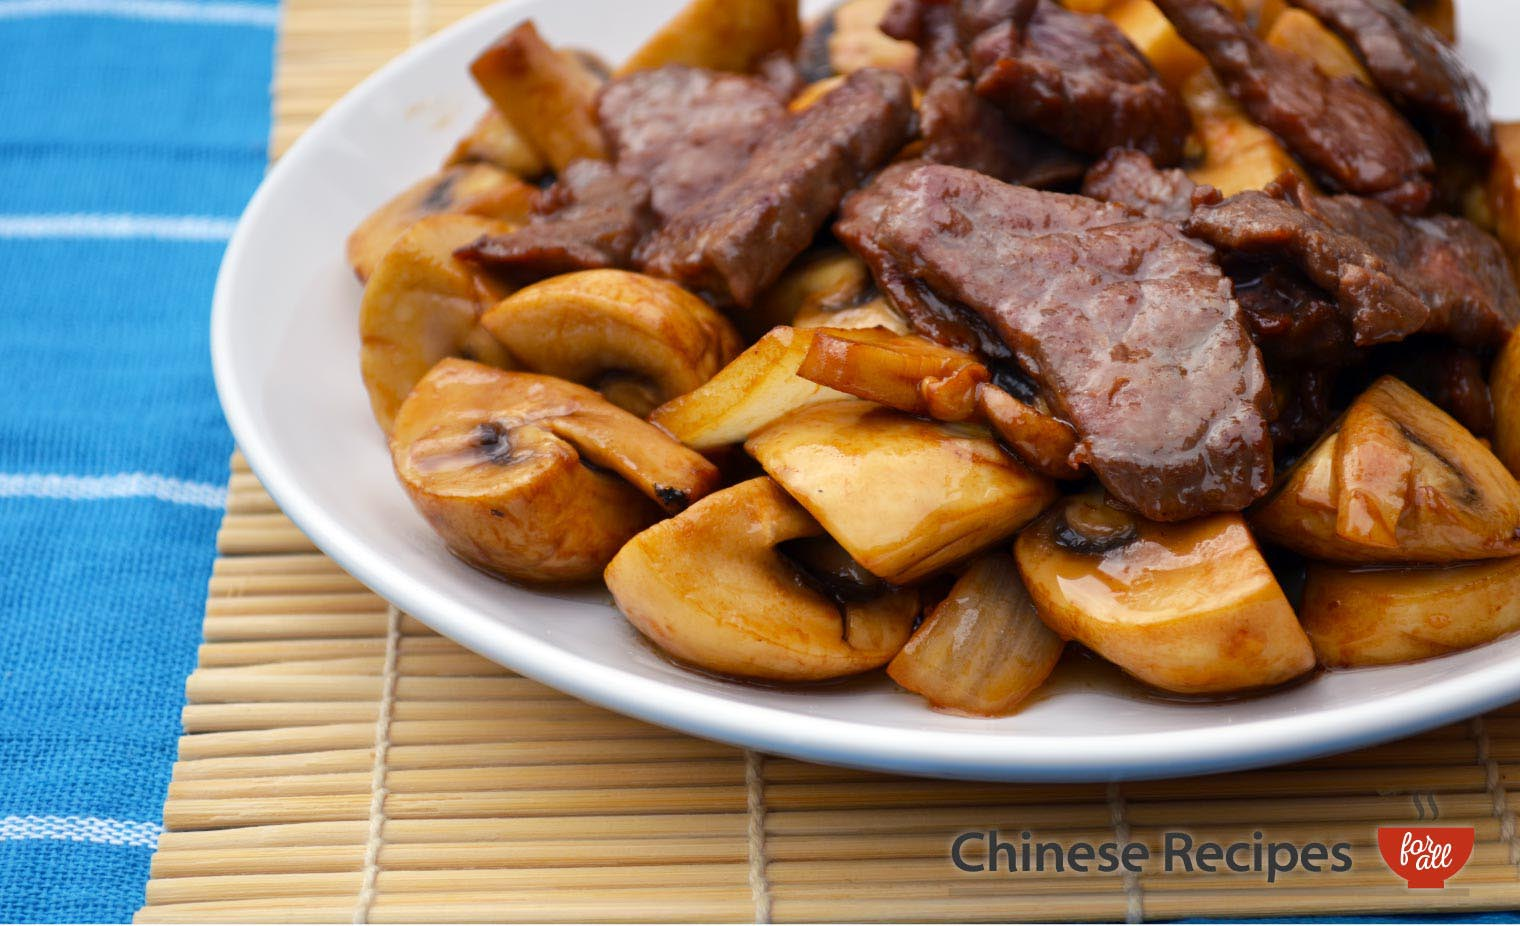 Beef and Mushrooms - Chinese Recipes For All